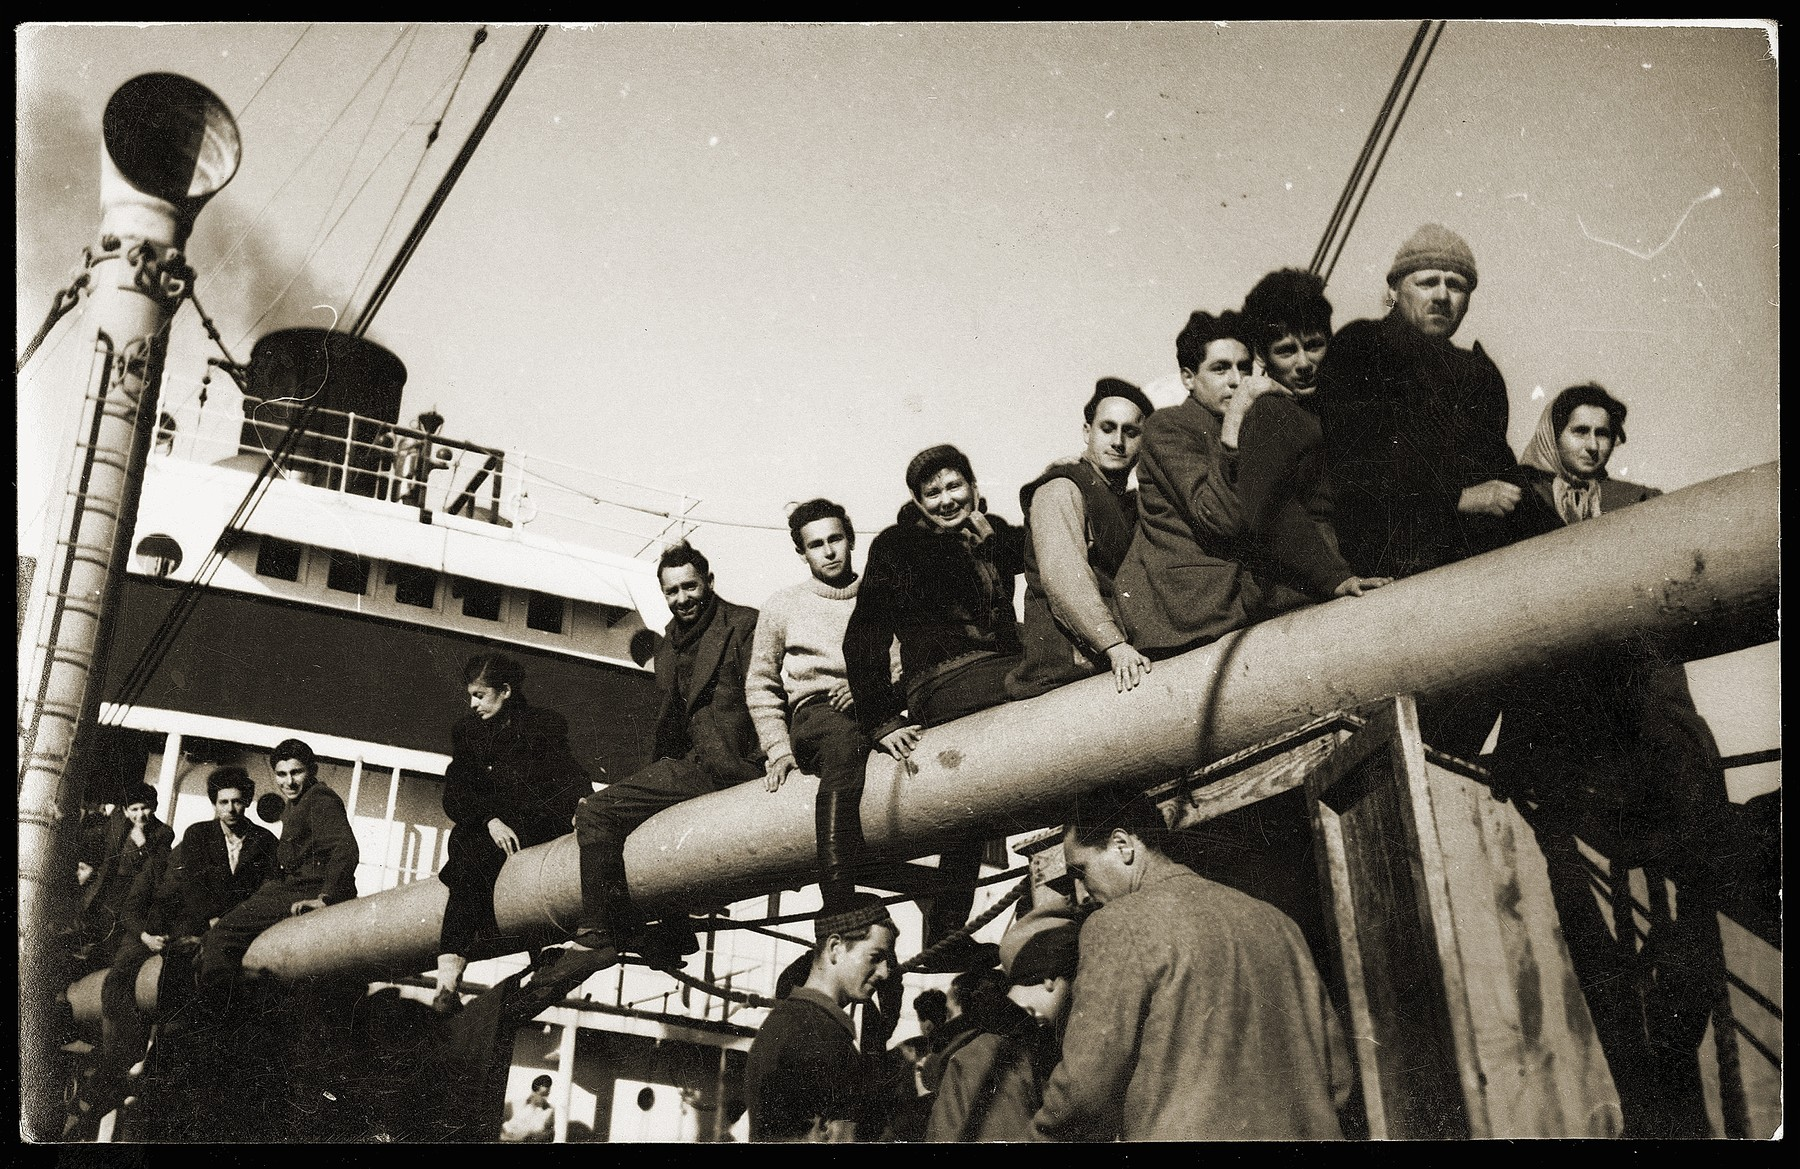 Yugoslavian Jews on the deck of the SS Kefalos, sailing from Bakar to Israel.  Among those pictured is Gyorgy Laszlo (bottom center, wearing a cap).  He was born in Subotica in 1929 and grew up in Becej, Yugoslavia. His mother, uncle, aunt, and two cousins also sailed on the same ship.